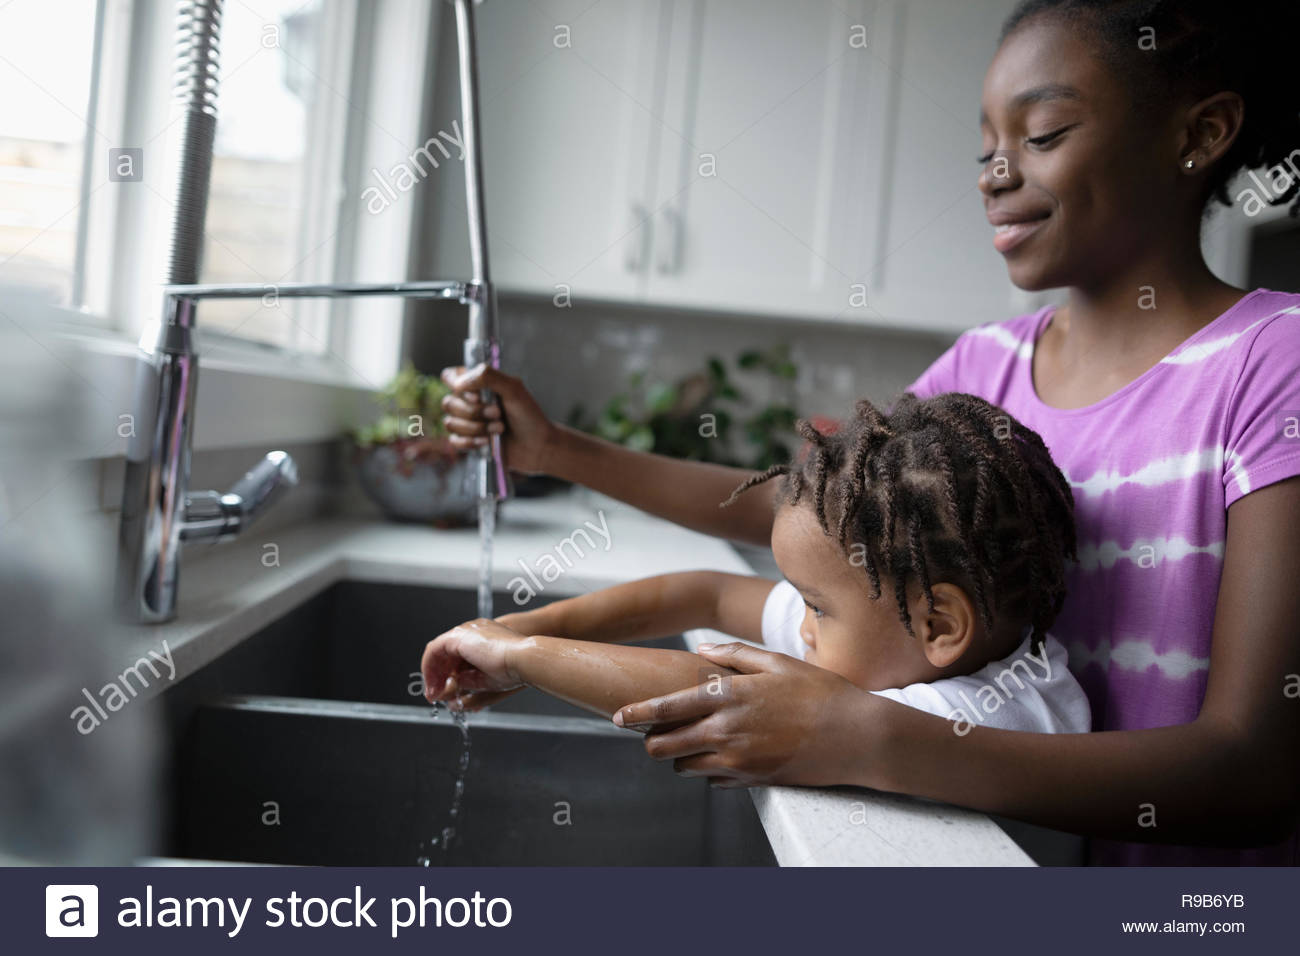 Sister helping toddler brother washing hands at kitchen sink Stock Photo